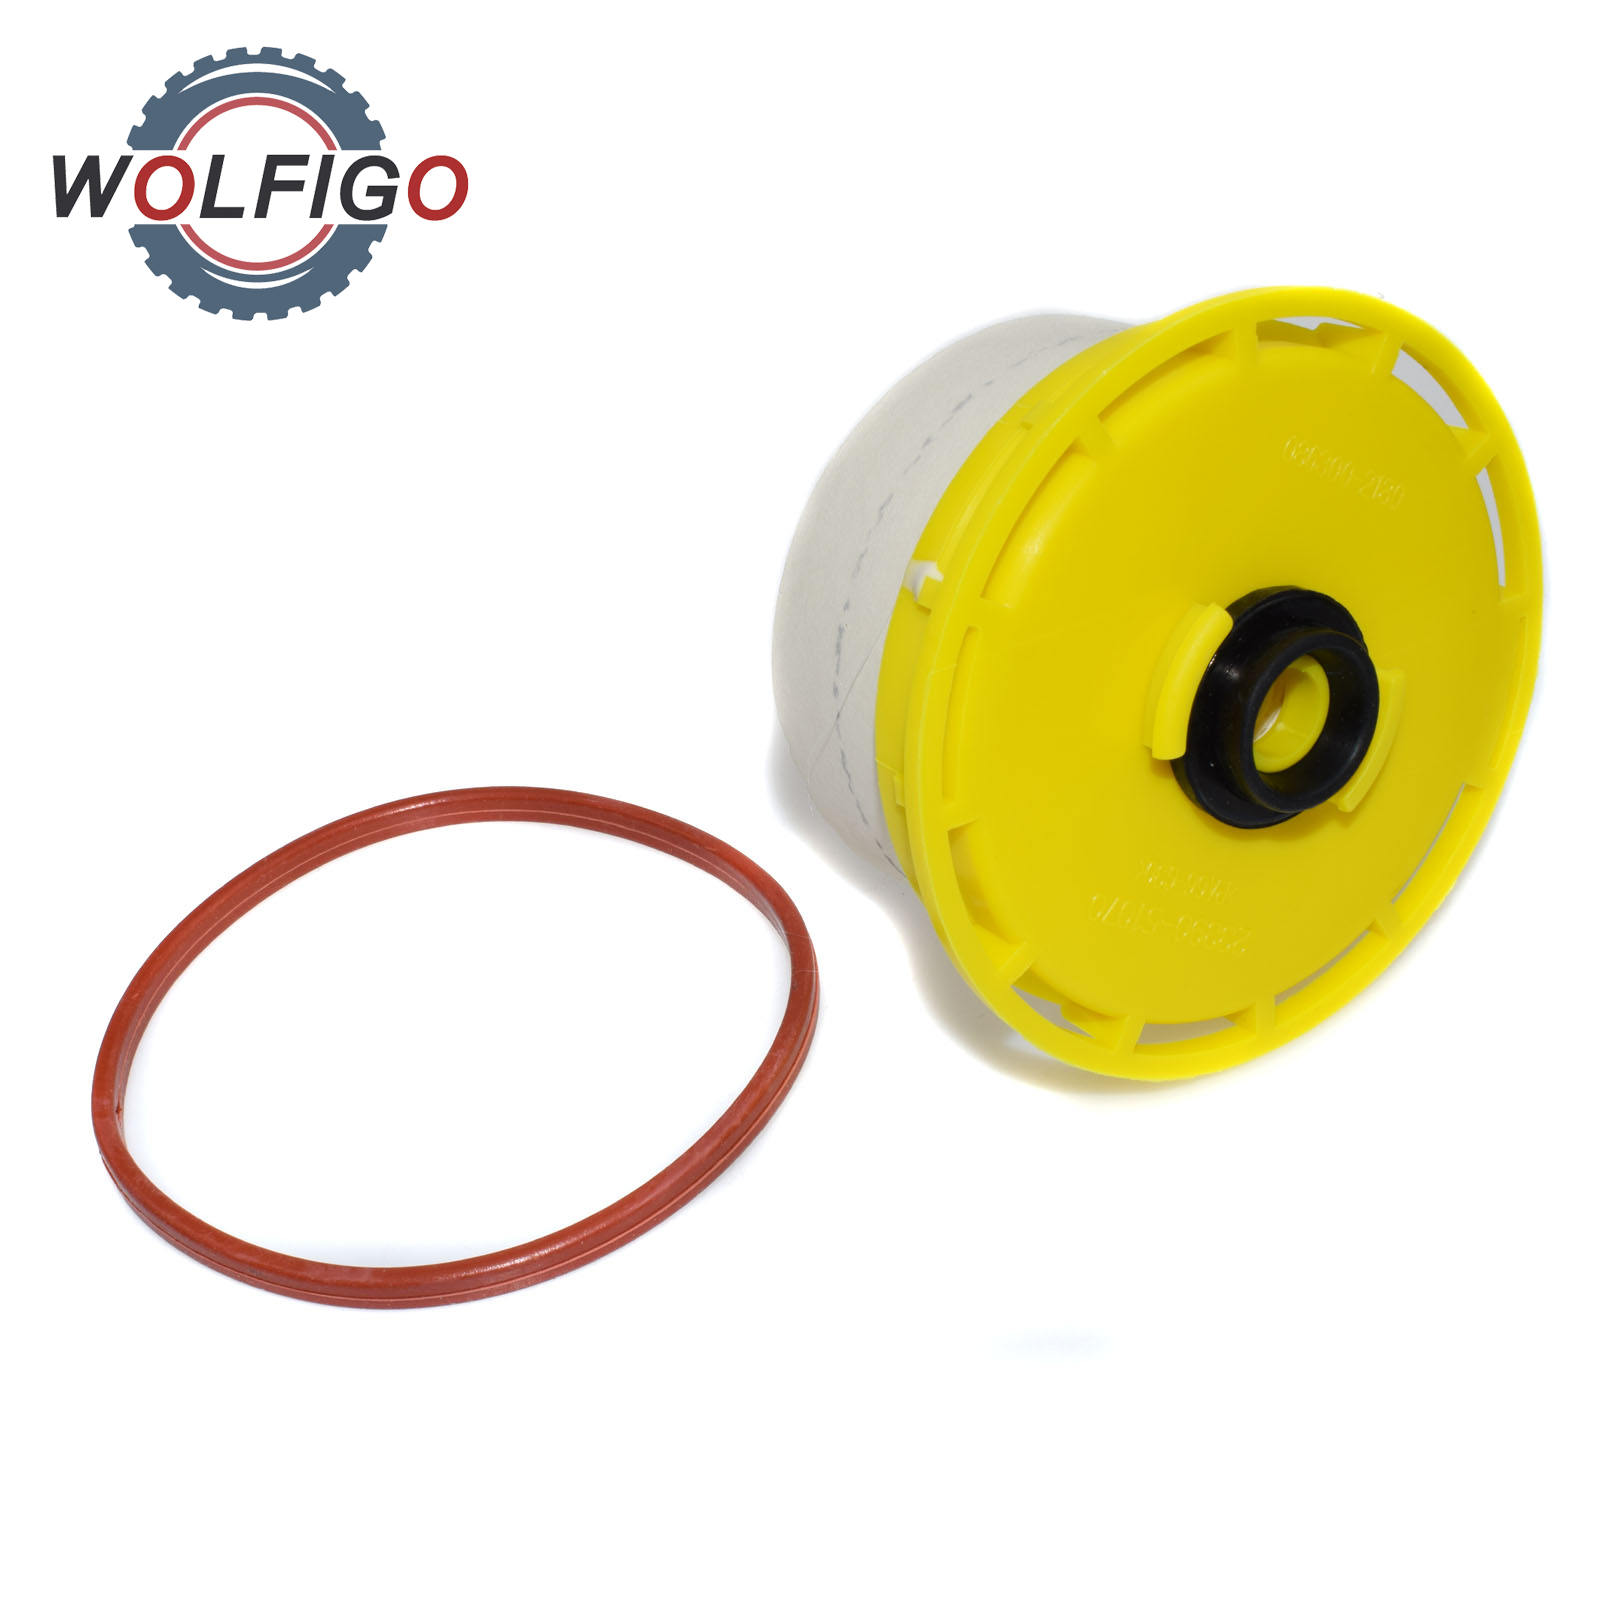 Wolfigo Fuel Filter For Toyota Land Cruiser 70 200 202 Lexus Lx450d 2006 Jeep Commander 460 570 23390 51070 2339051070 5102023390 In Filters From Automobiles